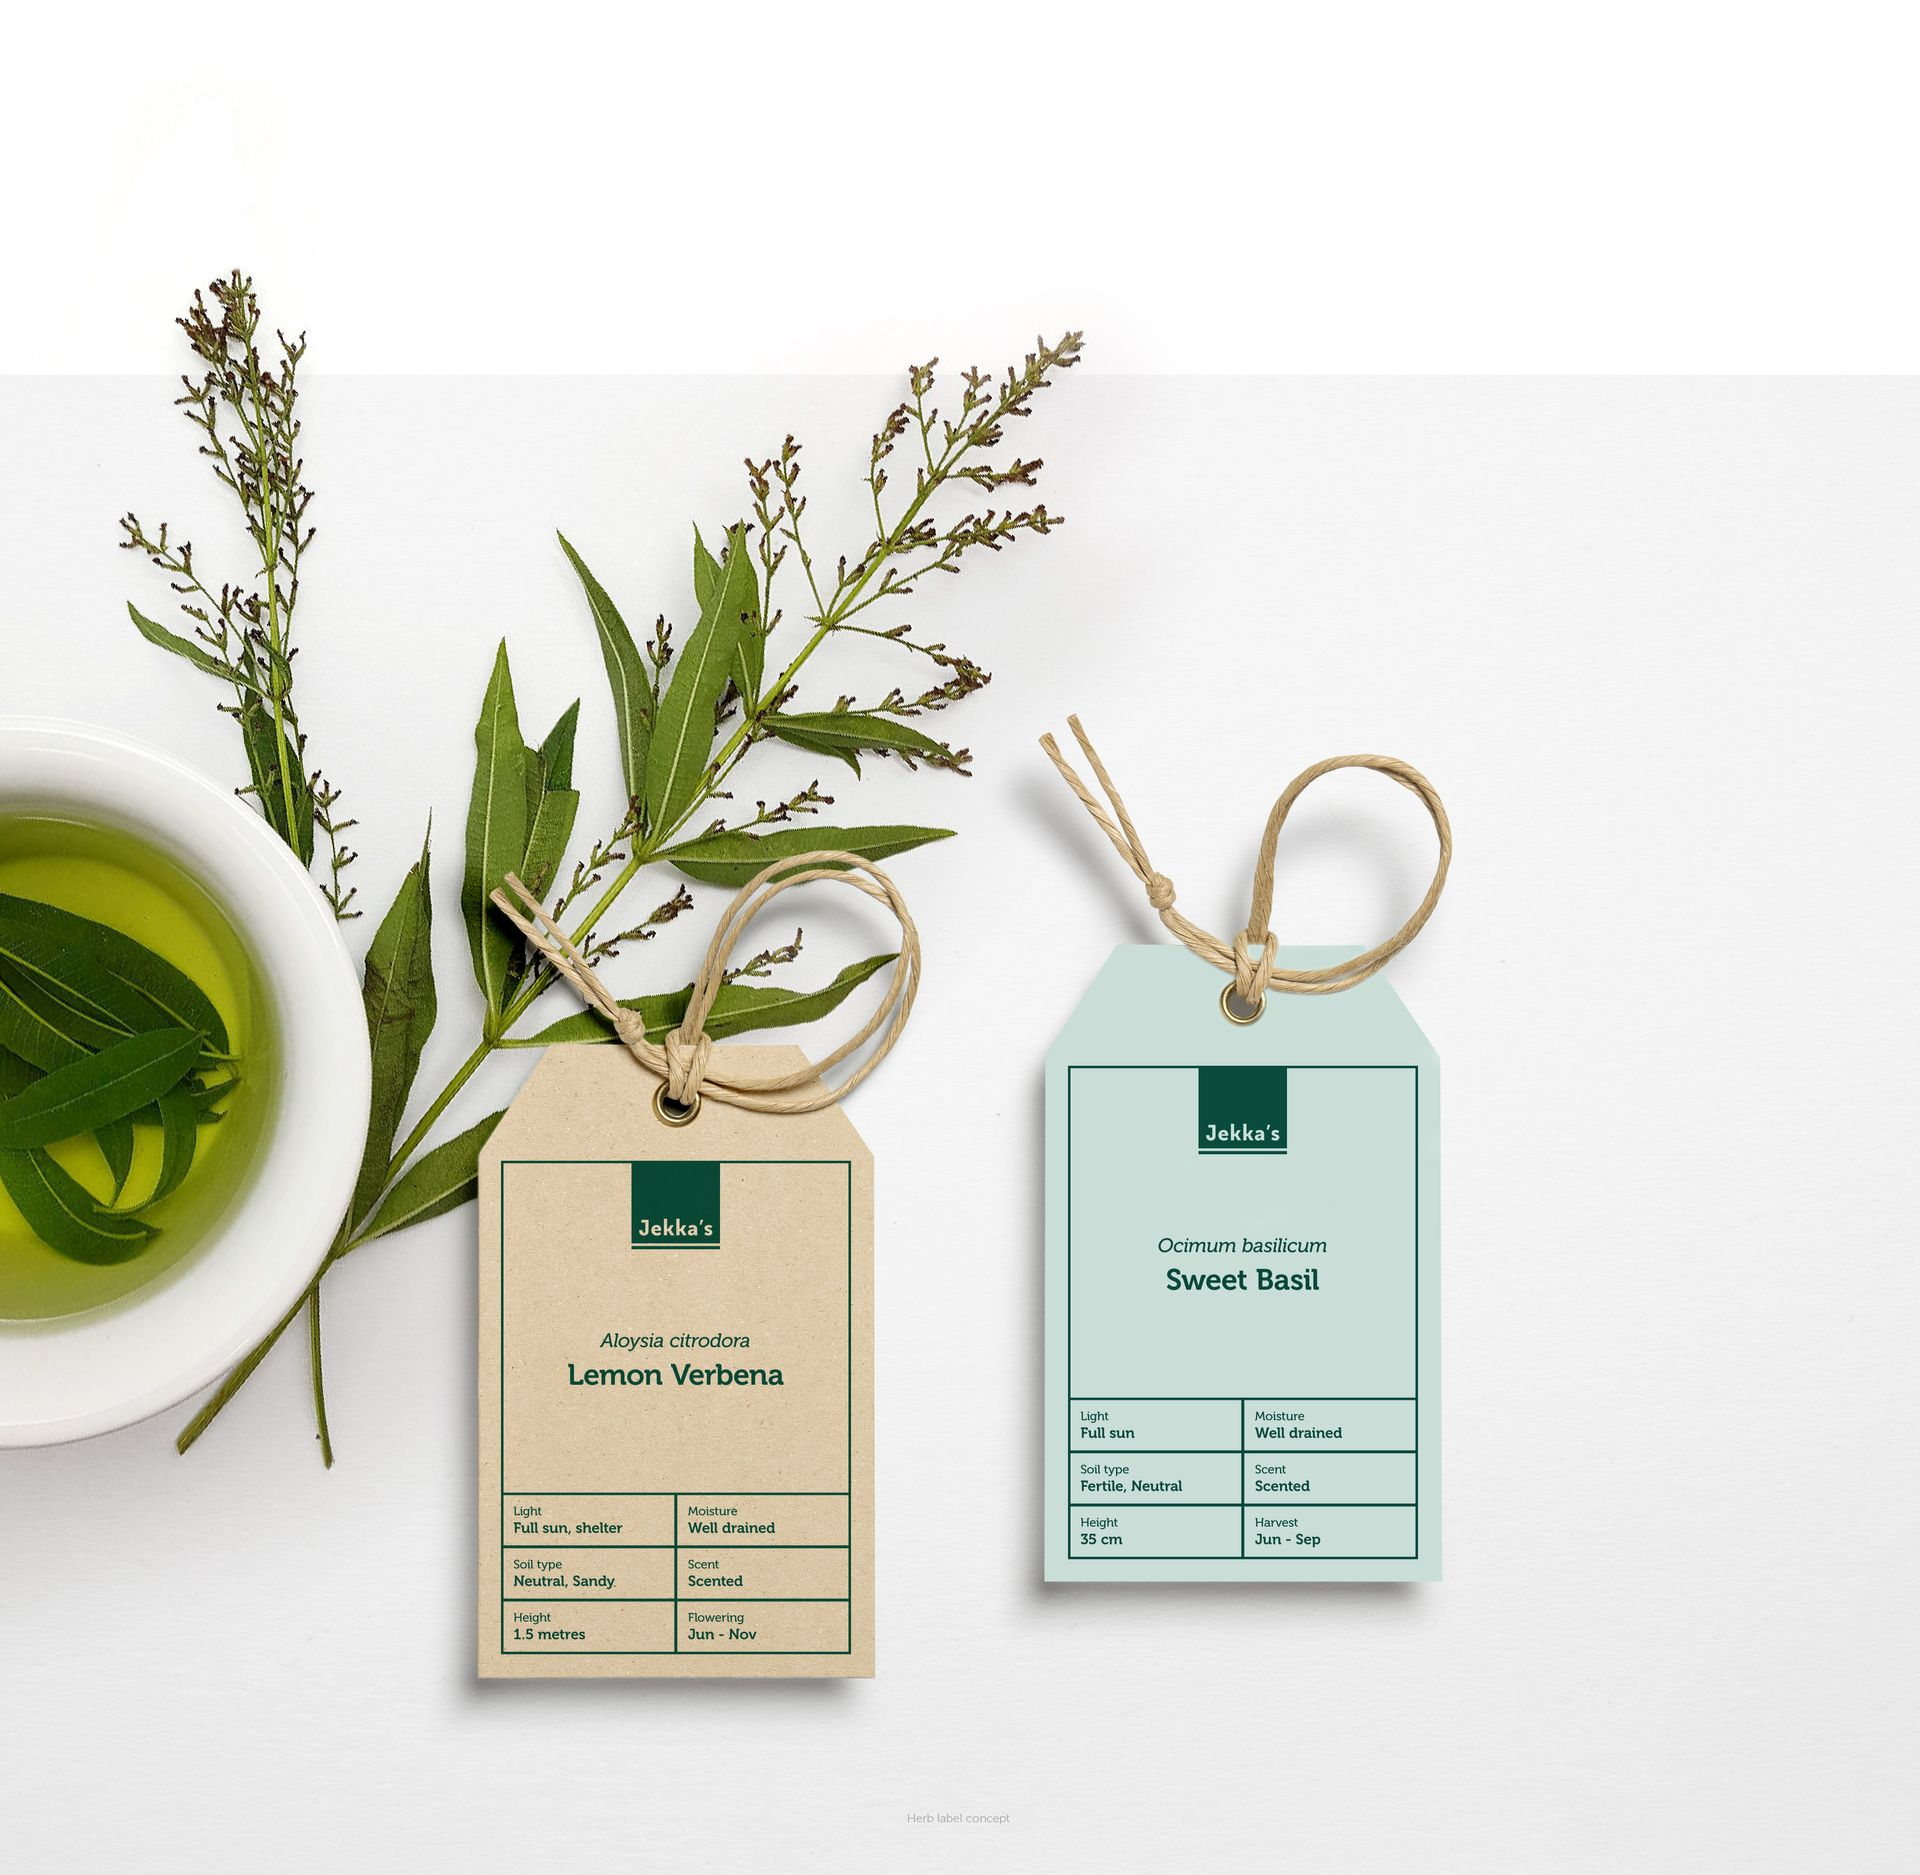 Jekka's herb label designs